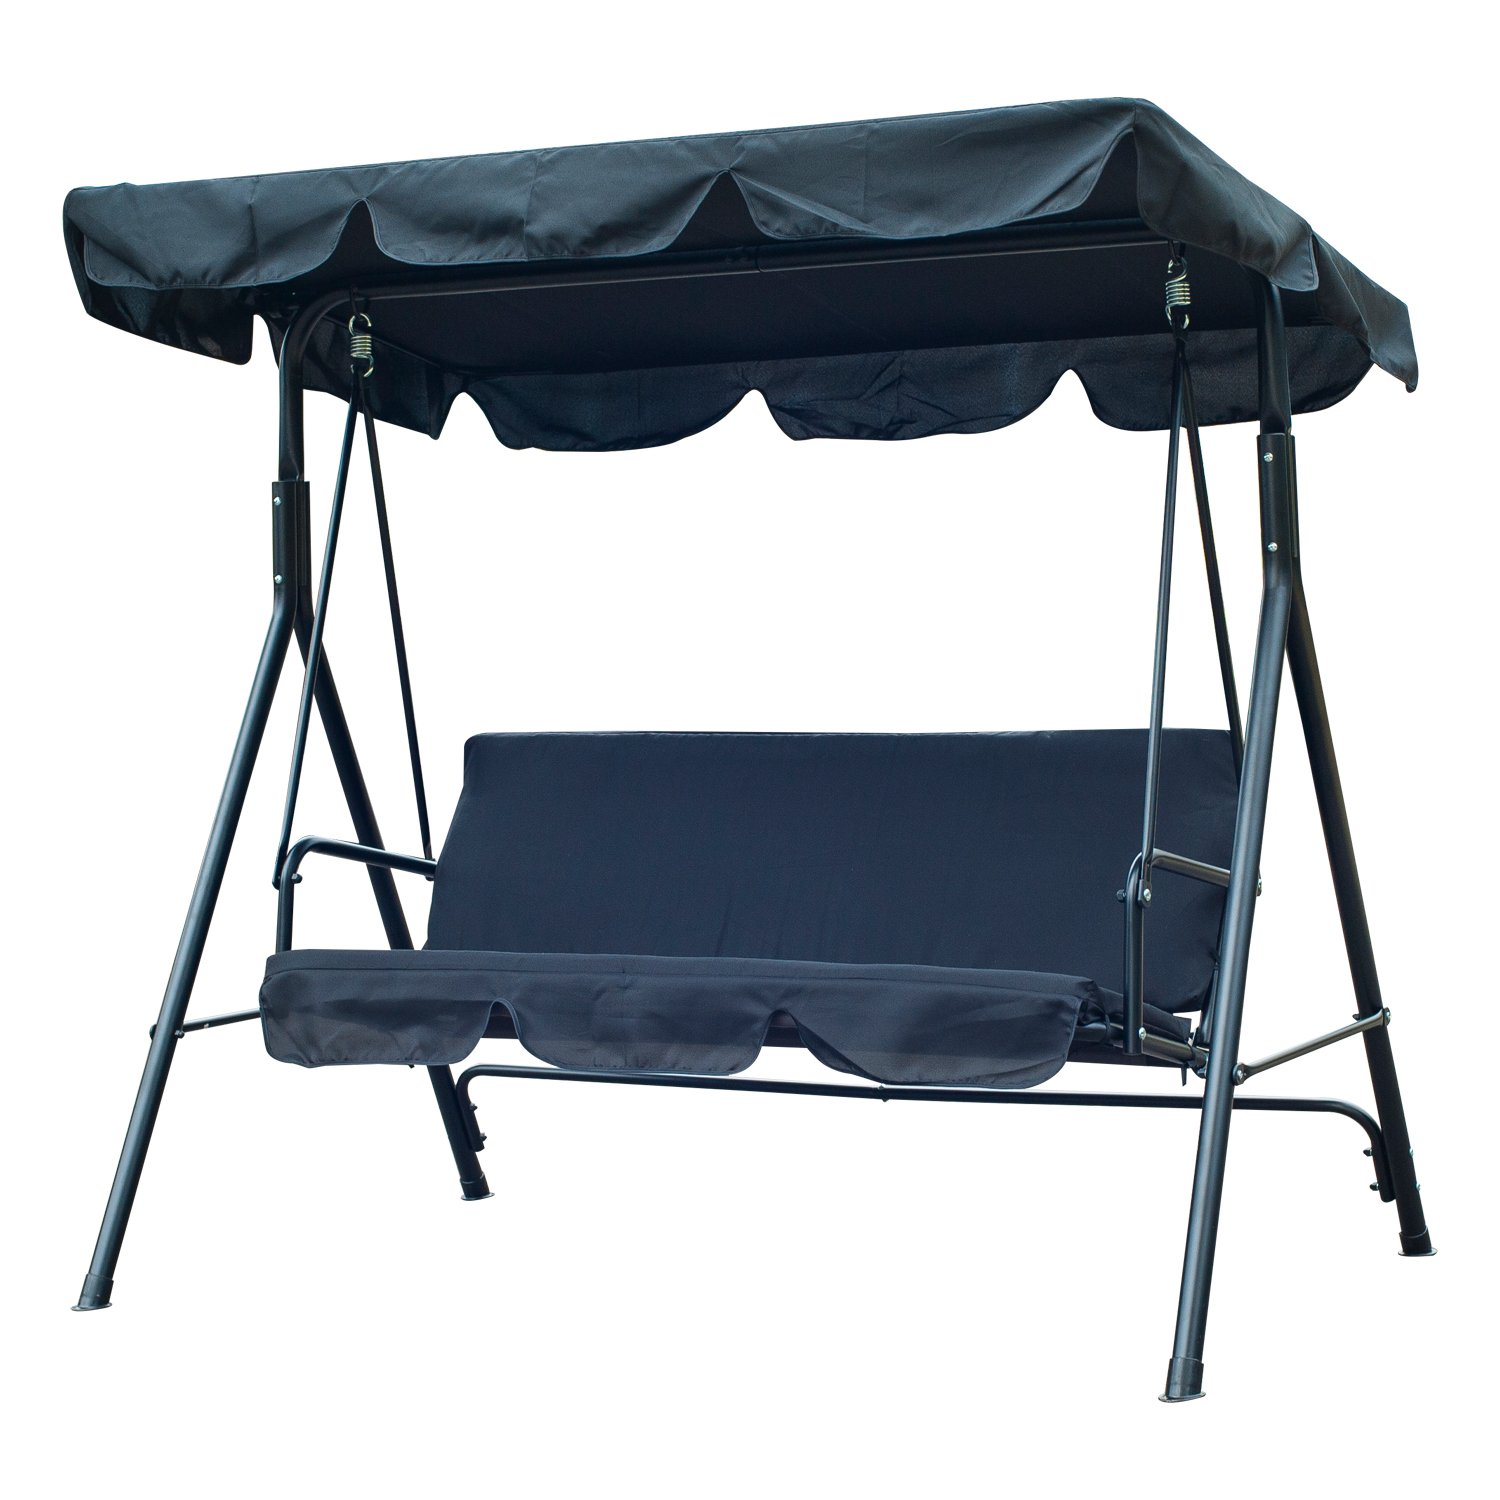 Amazon.com : Outsunny 3 Person Canopy Porch Swing   Black : Patio, Lawn U0026  Garden